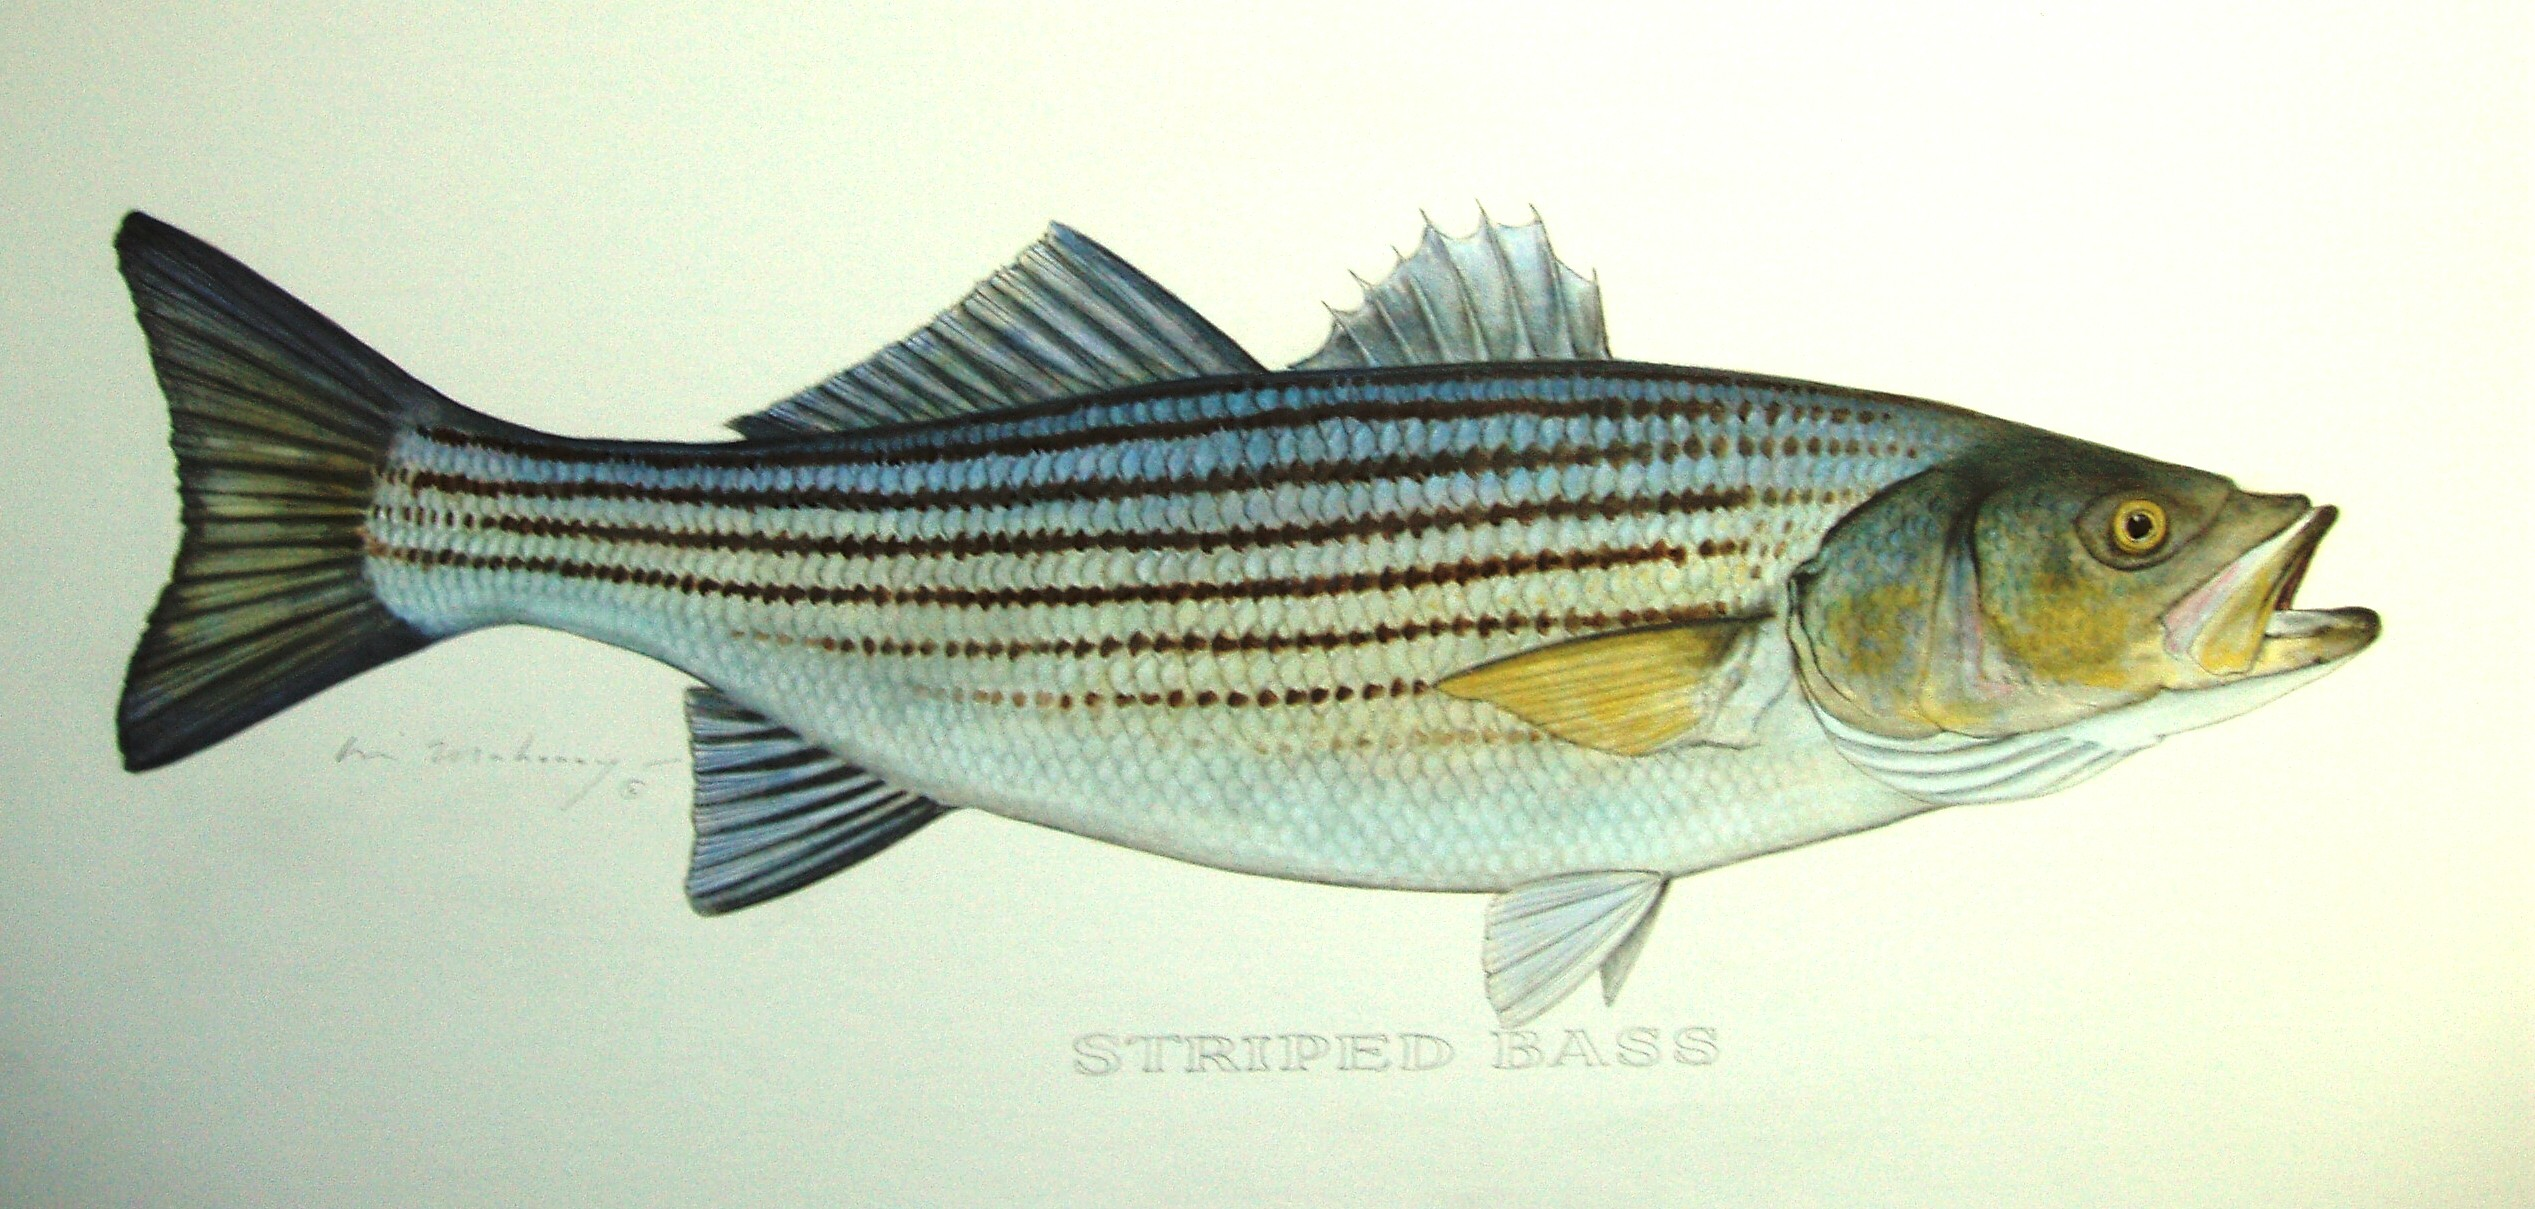 Striped Bass.jpg